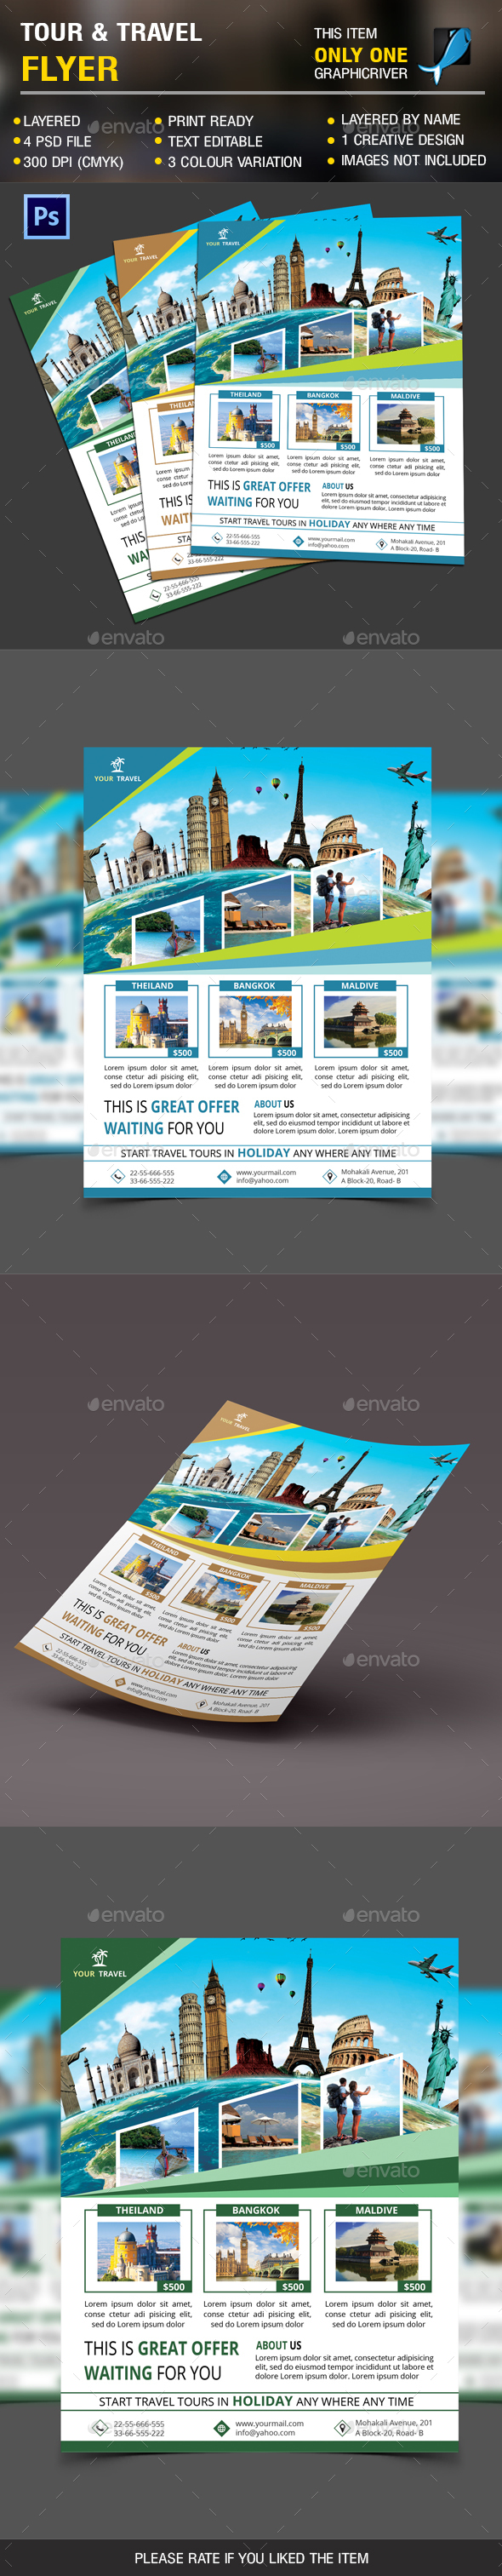 Holiday Travel Flyer Vol 2 - Holidays Events